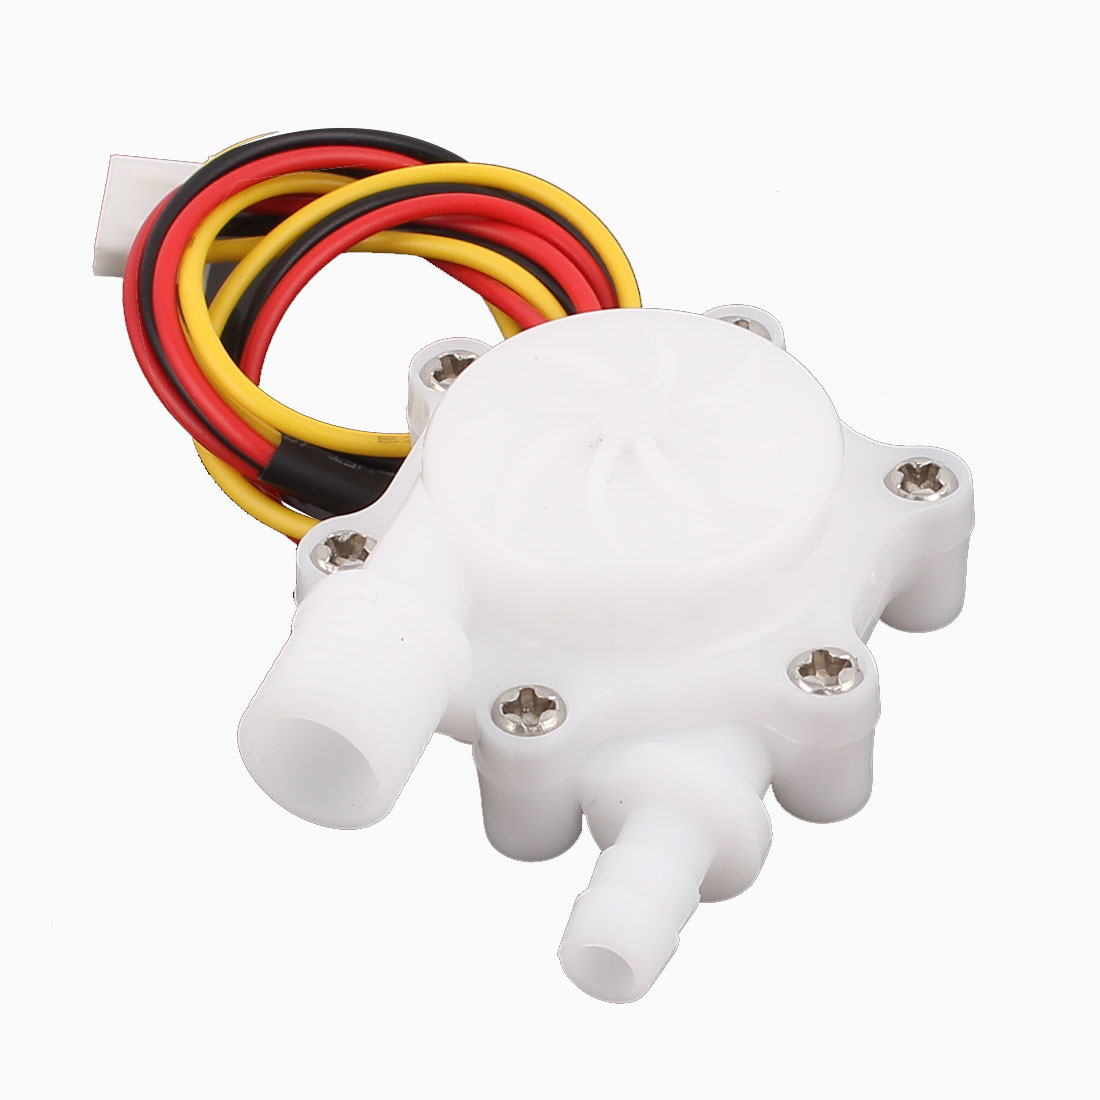 0.15-1.5L/min G1/4 Thread 6mm OD Hall Effect Water Flow Counter Sensor SEN-HW06FA